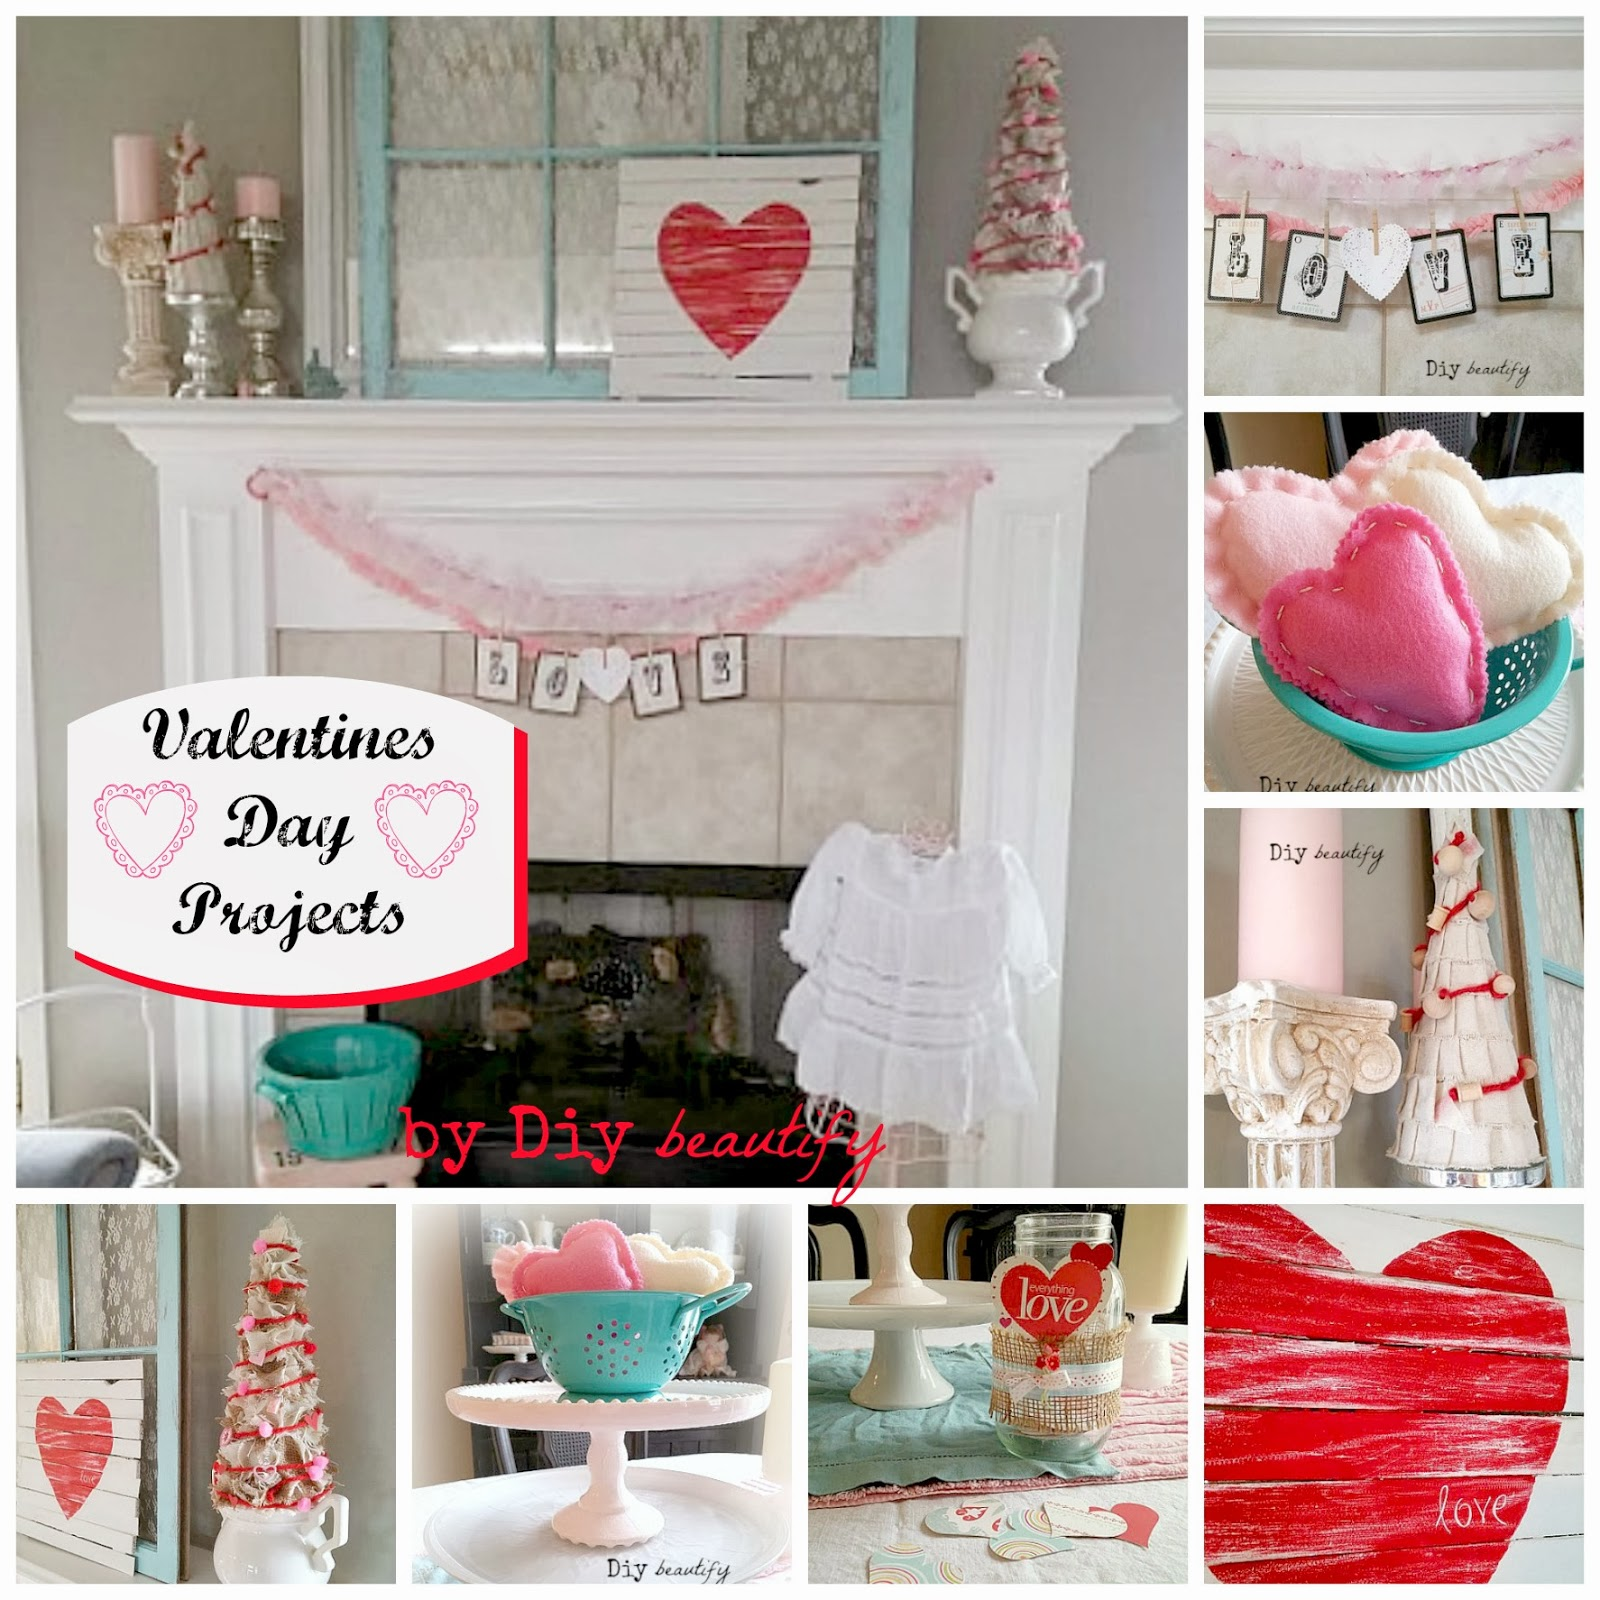 Valentine's Projects for your home. Find the links and tutorials at diy beautify.